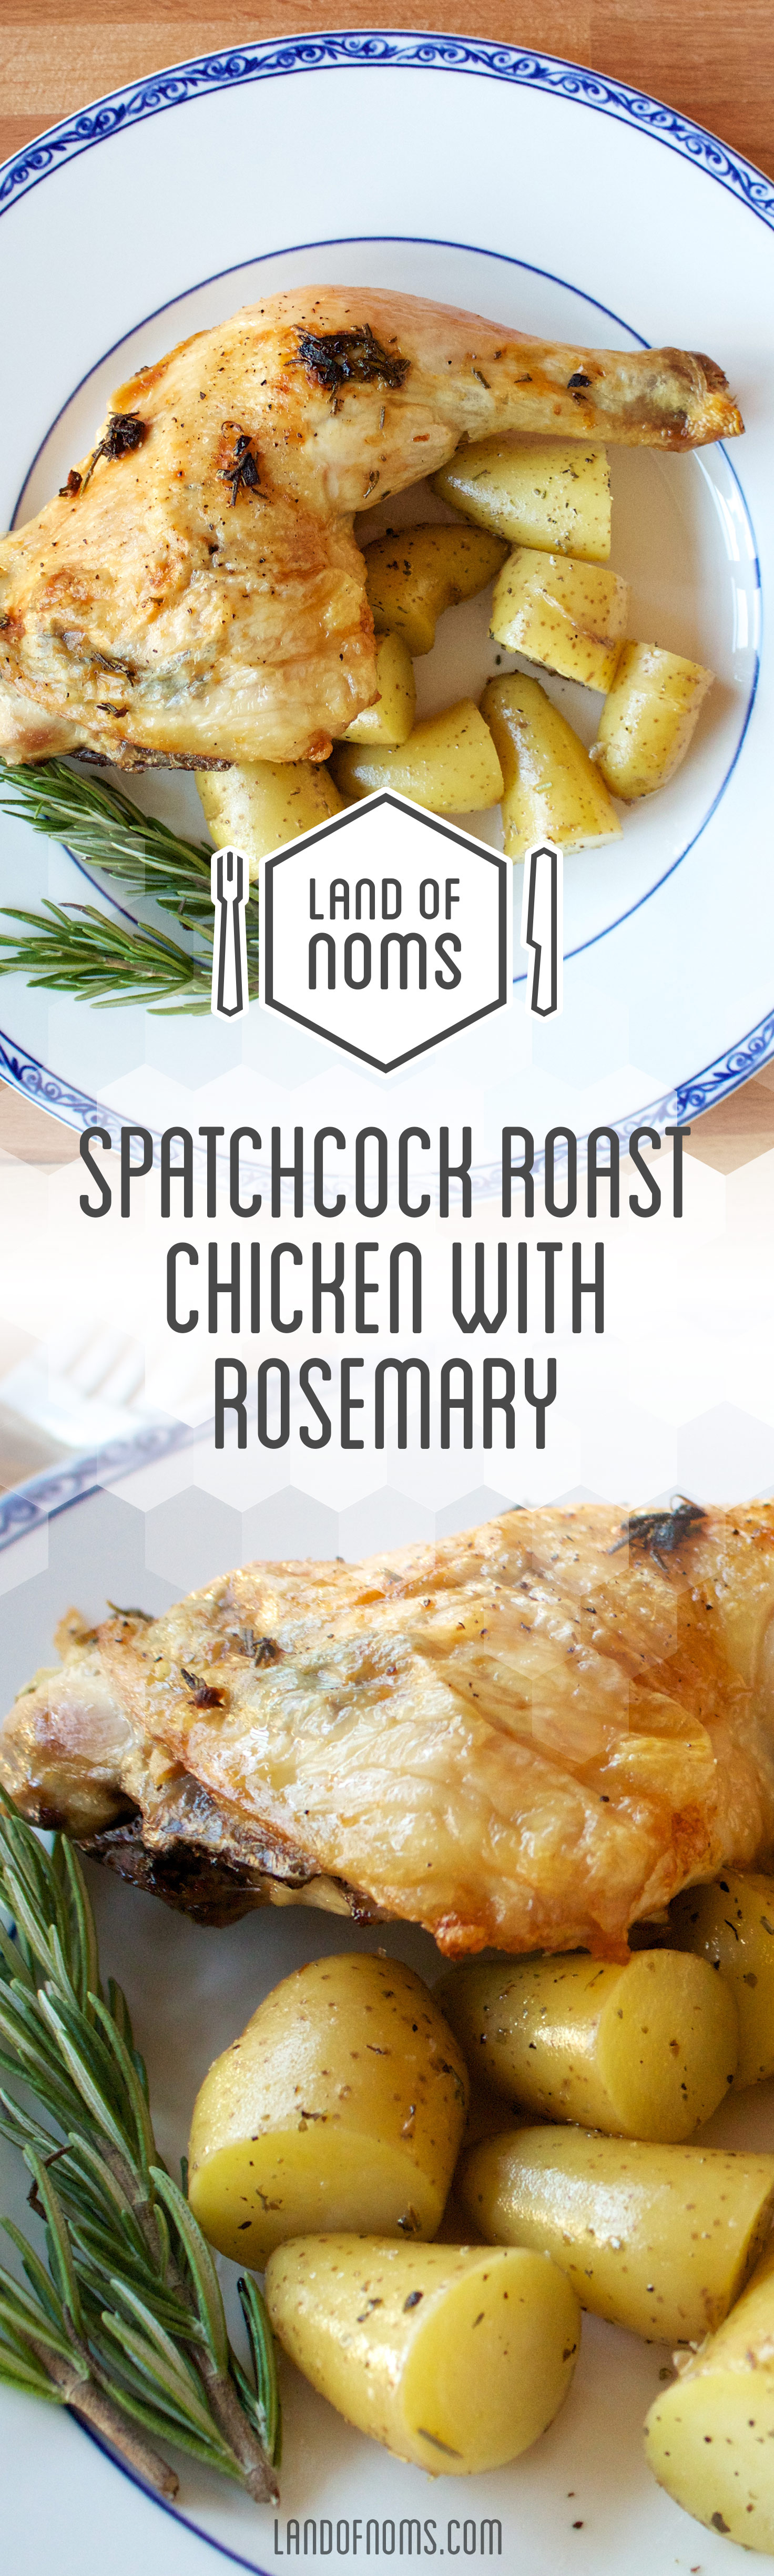 The secret to quickly cooking an entire bird, #spatchcocking! This #roast #chicken #recipe is delicious!